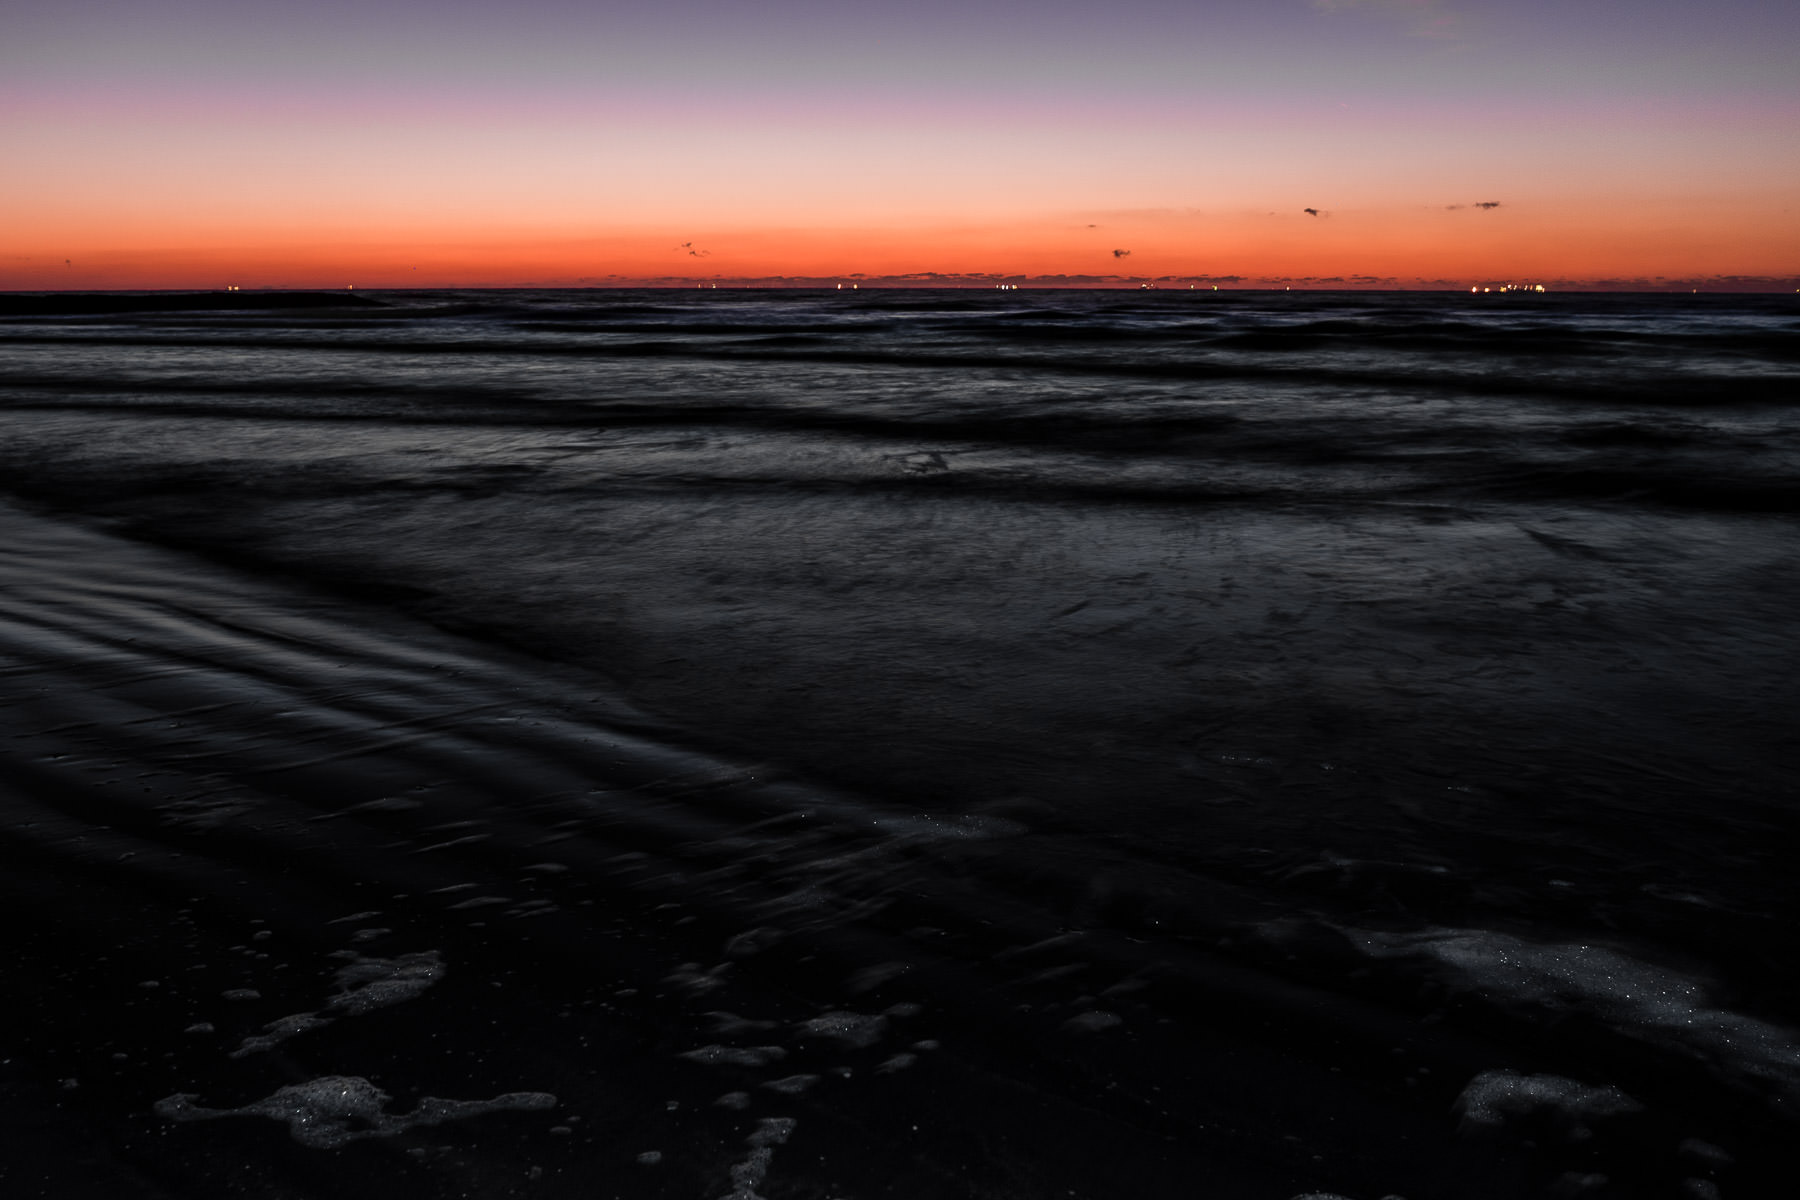 Ships' lights dot the horizon as the sun rises over the Gulf of Mexico as seen from a Galveston, Texas, beach.